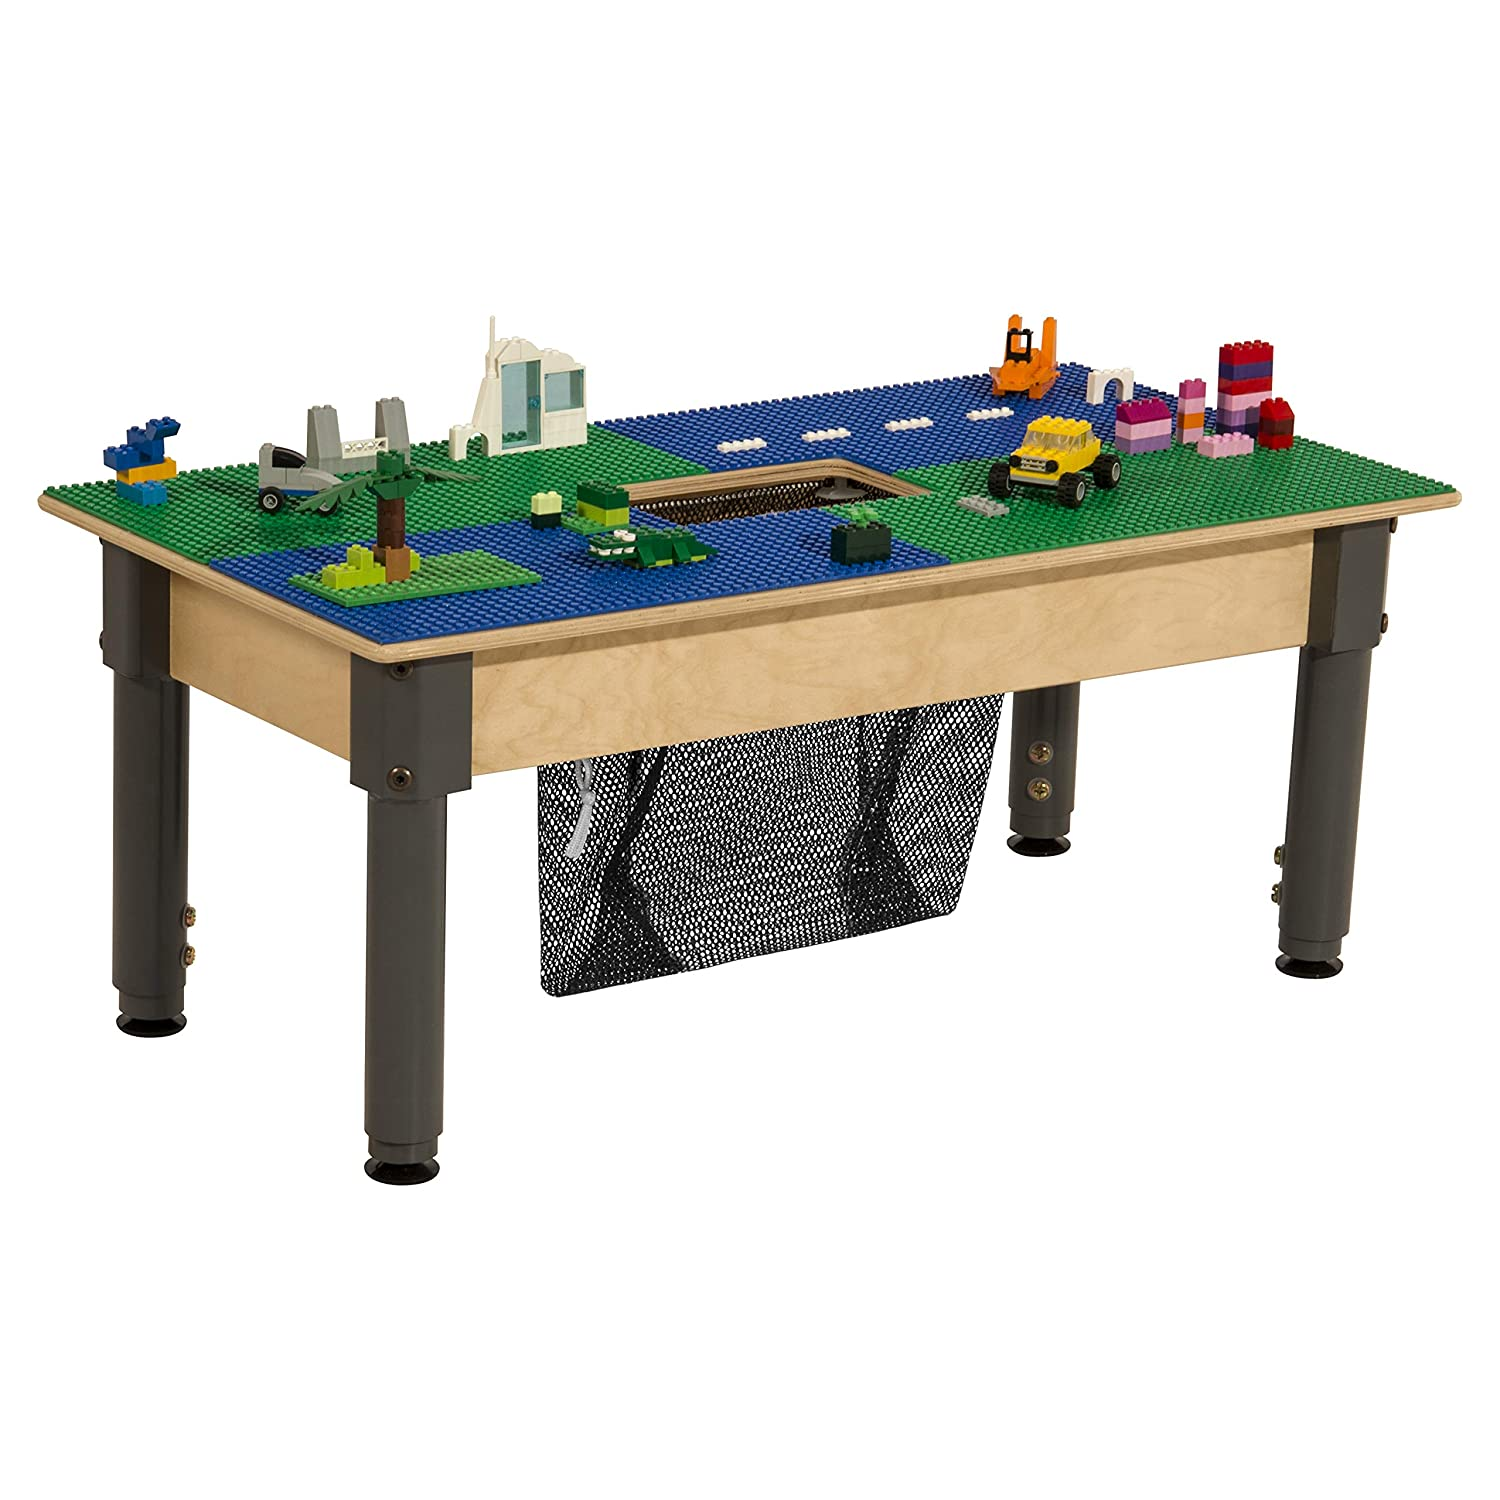 Time-2-Play Lego Compatible Table with Storage and Adjustable Legs 12-17 for Kids//Toddlers